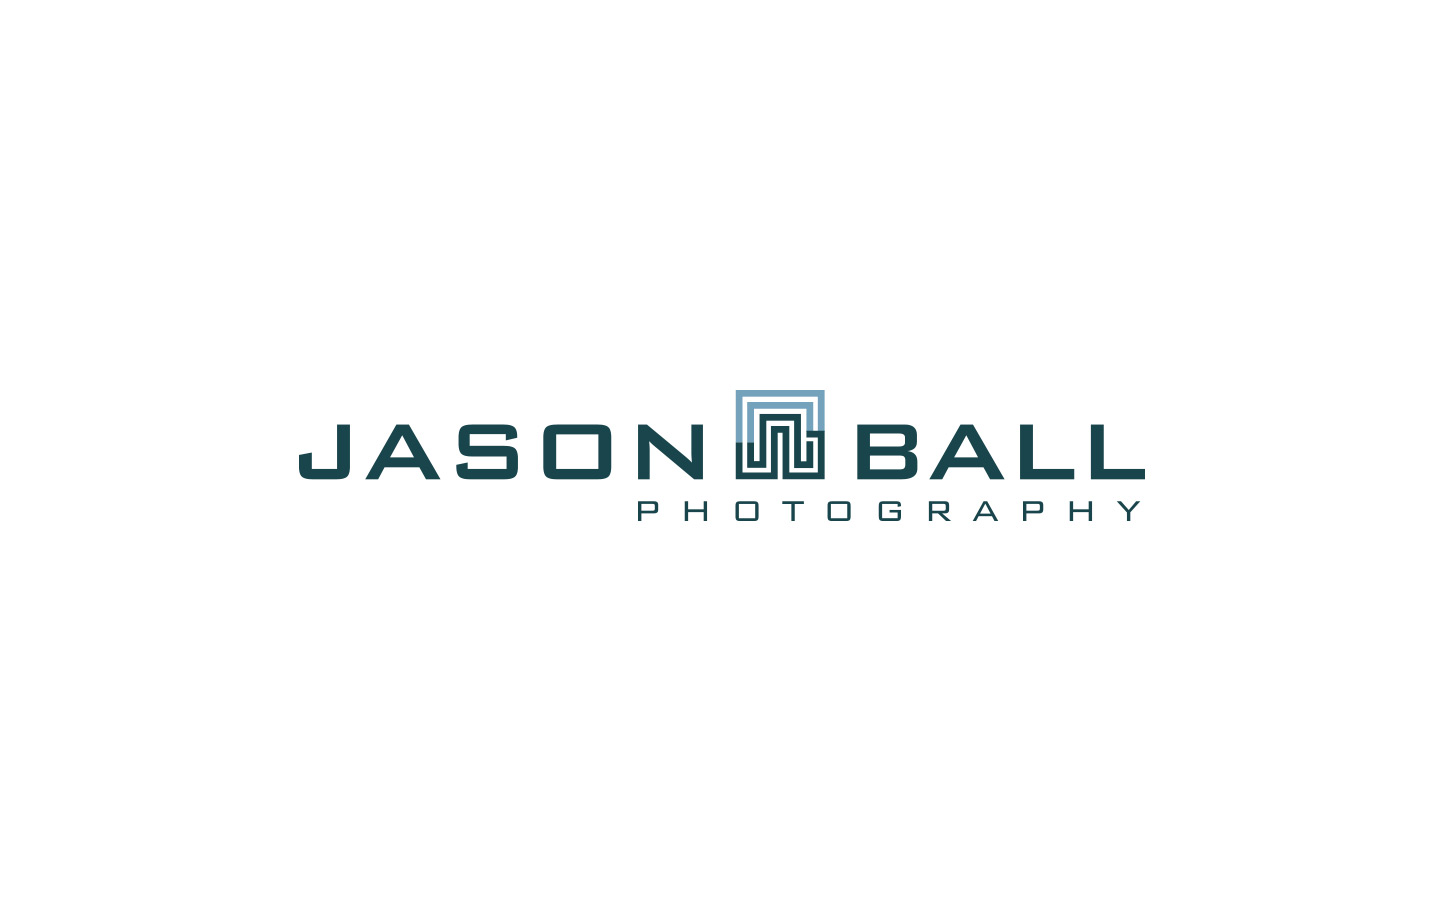 photography logo salt lake city utah